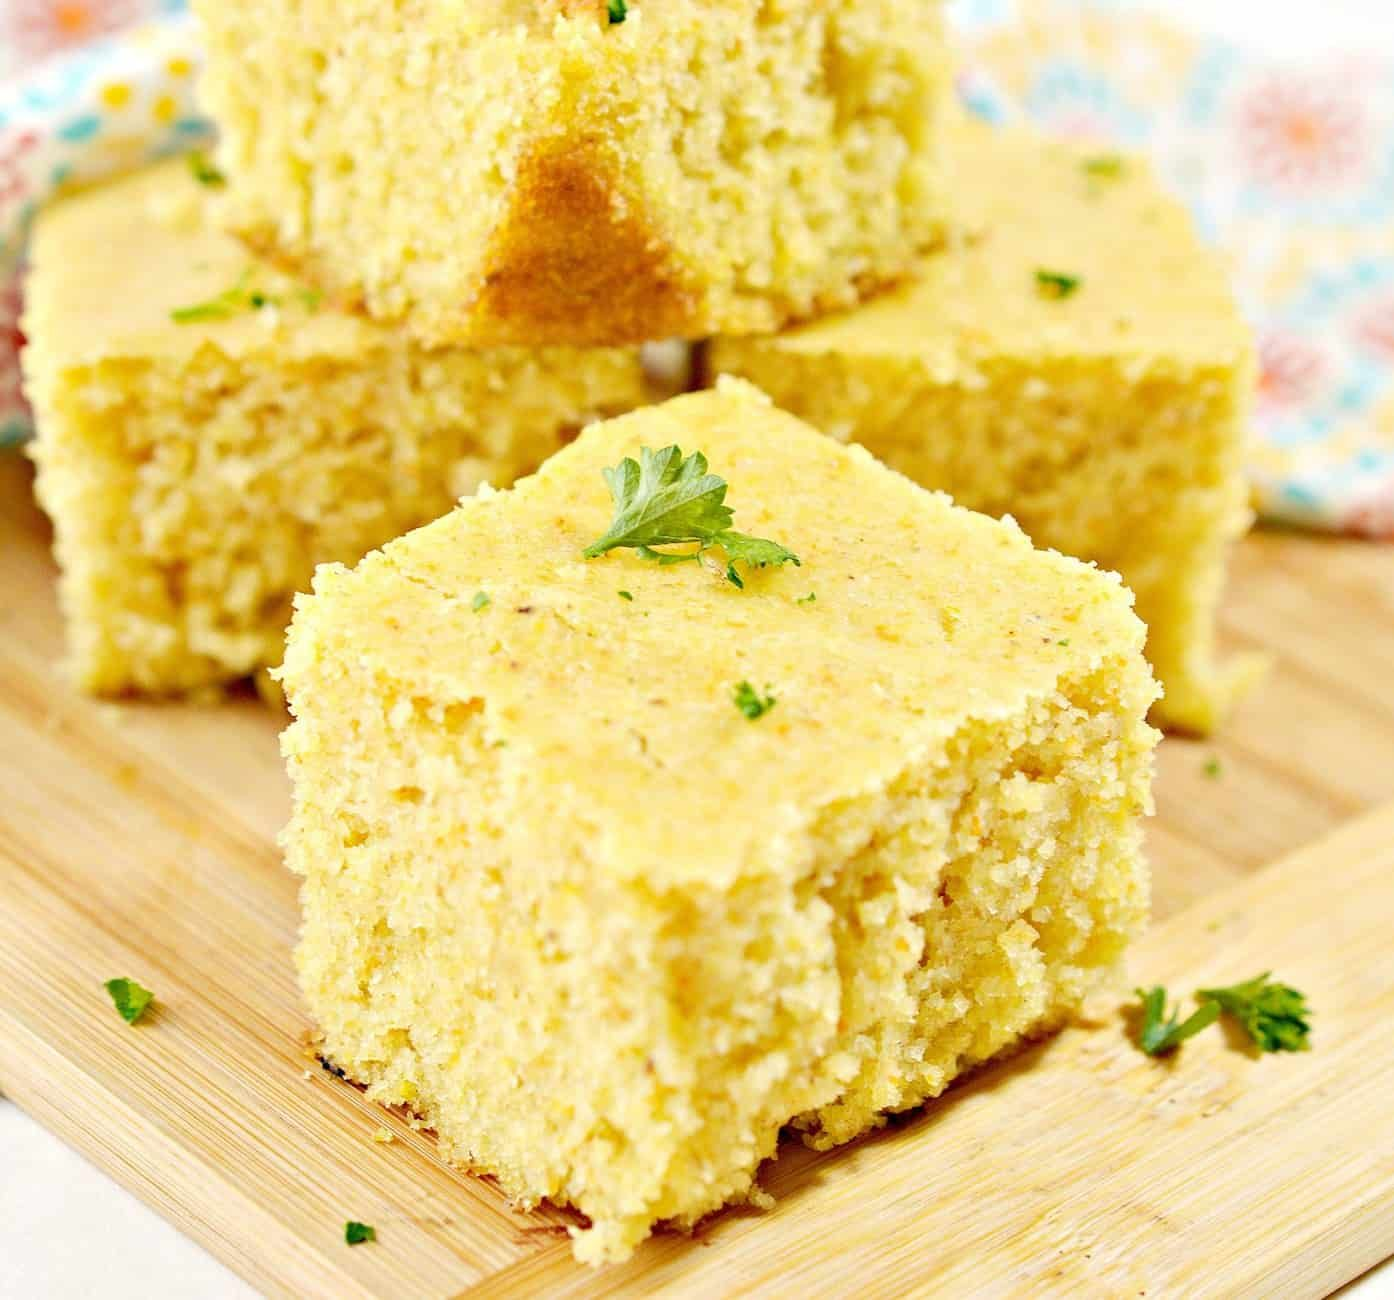 Grandma S Buttermilk Cornbread Recipe In 2020 Sweet Cornbread Buttermilk Cornbread Cornbread